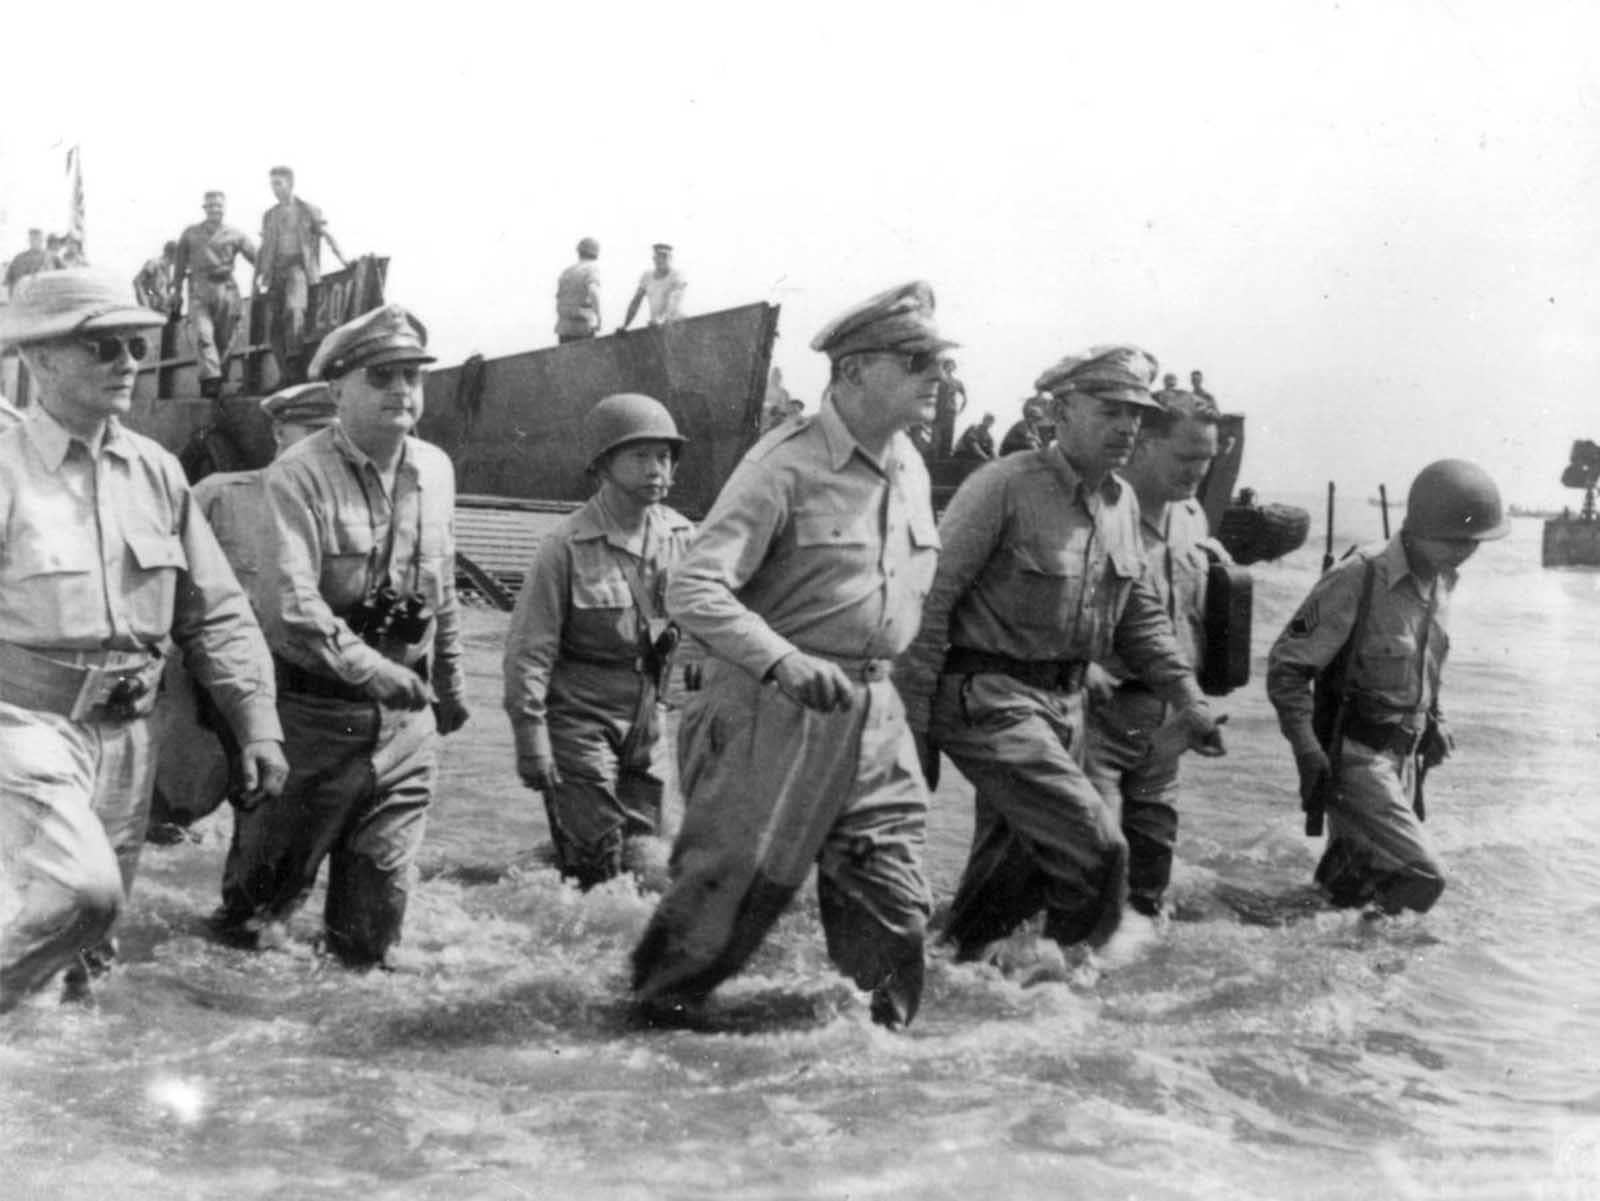 Gen. Douglas MacArthur, center, is accompanied by his officers and Sergio Osmena, president of the Philippines in exile, extreme left, as he wades ashore during landing operations at Leyte, Philippines, on October 20, 1944, after U.S. forces recaptured the beach of the Japanese-occupied island.